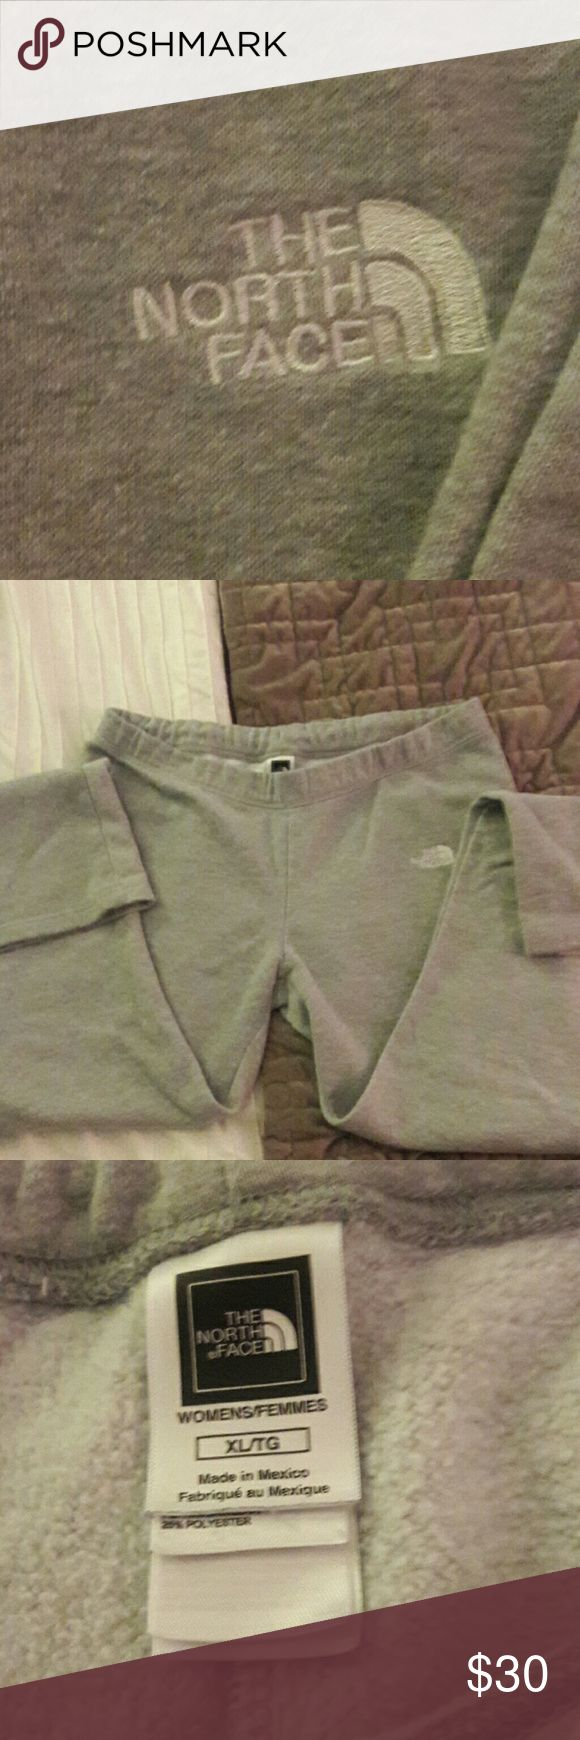 💞💕EUC North Face Sweats💞💖 💞💕Excellent used condition grey sweatpants by The North Face, women's size XL. There is extreme minor discoloration at the bottom hem in the back from the sweatpants dragging on the ground as these are pretty long. I'm 5'7 and they were long on me. Drawstring closure for adjustable fit. Love these, just too big on me. I ordered a medium. Take advantage of my closet clean out clearance sale. Check out my closet for bundling savings on designer items. All items…